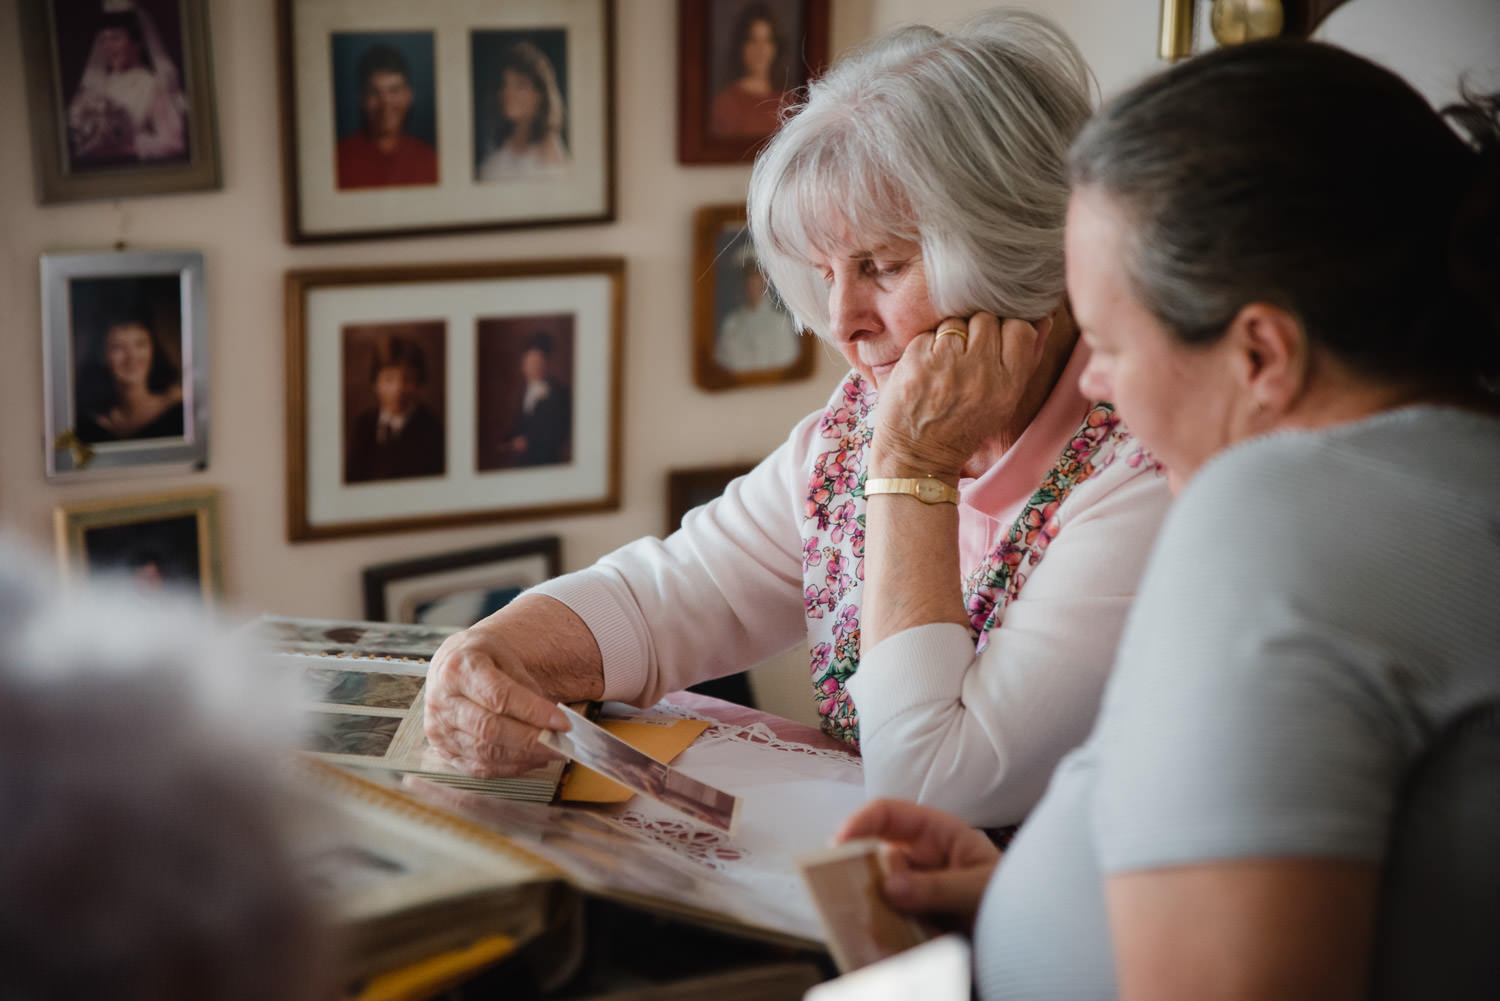 A mother and daughter look through family photographs.